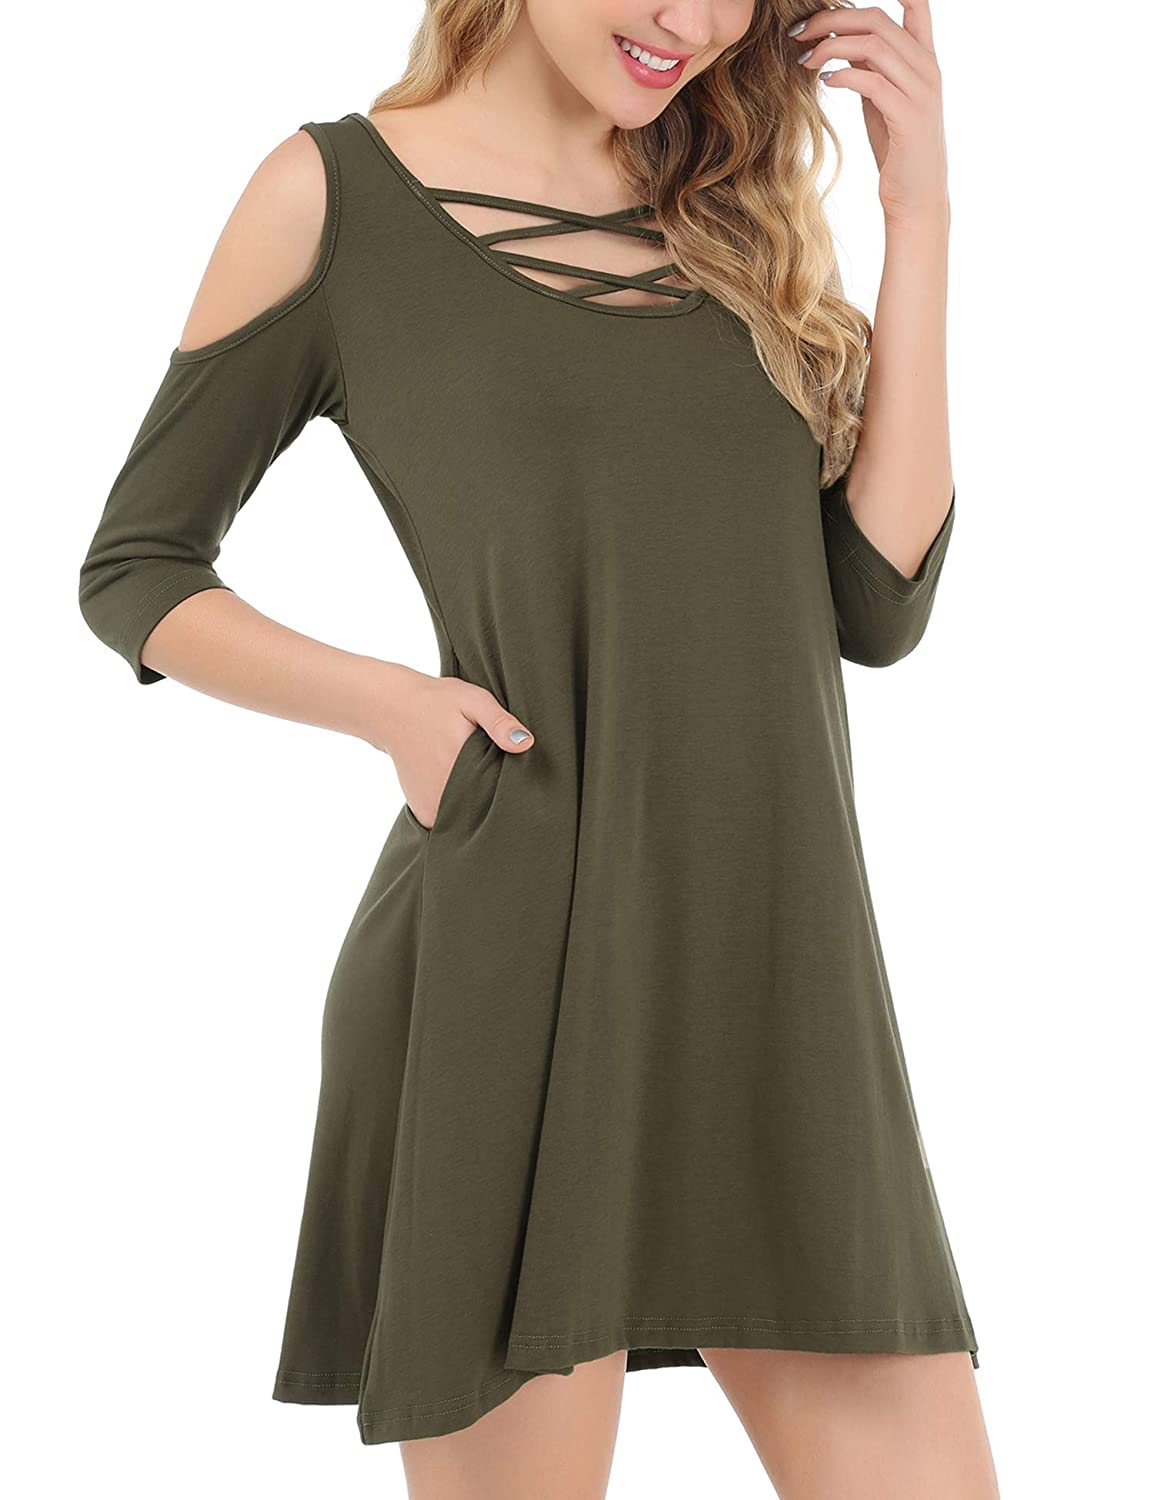 ae17905061b Pasithea Women s Cold Shoulder Criss Cross Neck 3 4 Sleeve Casual Tunic Top  Dress with Pockets  Amazon.co.uk  Clothing